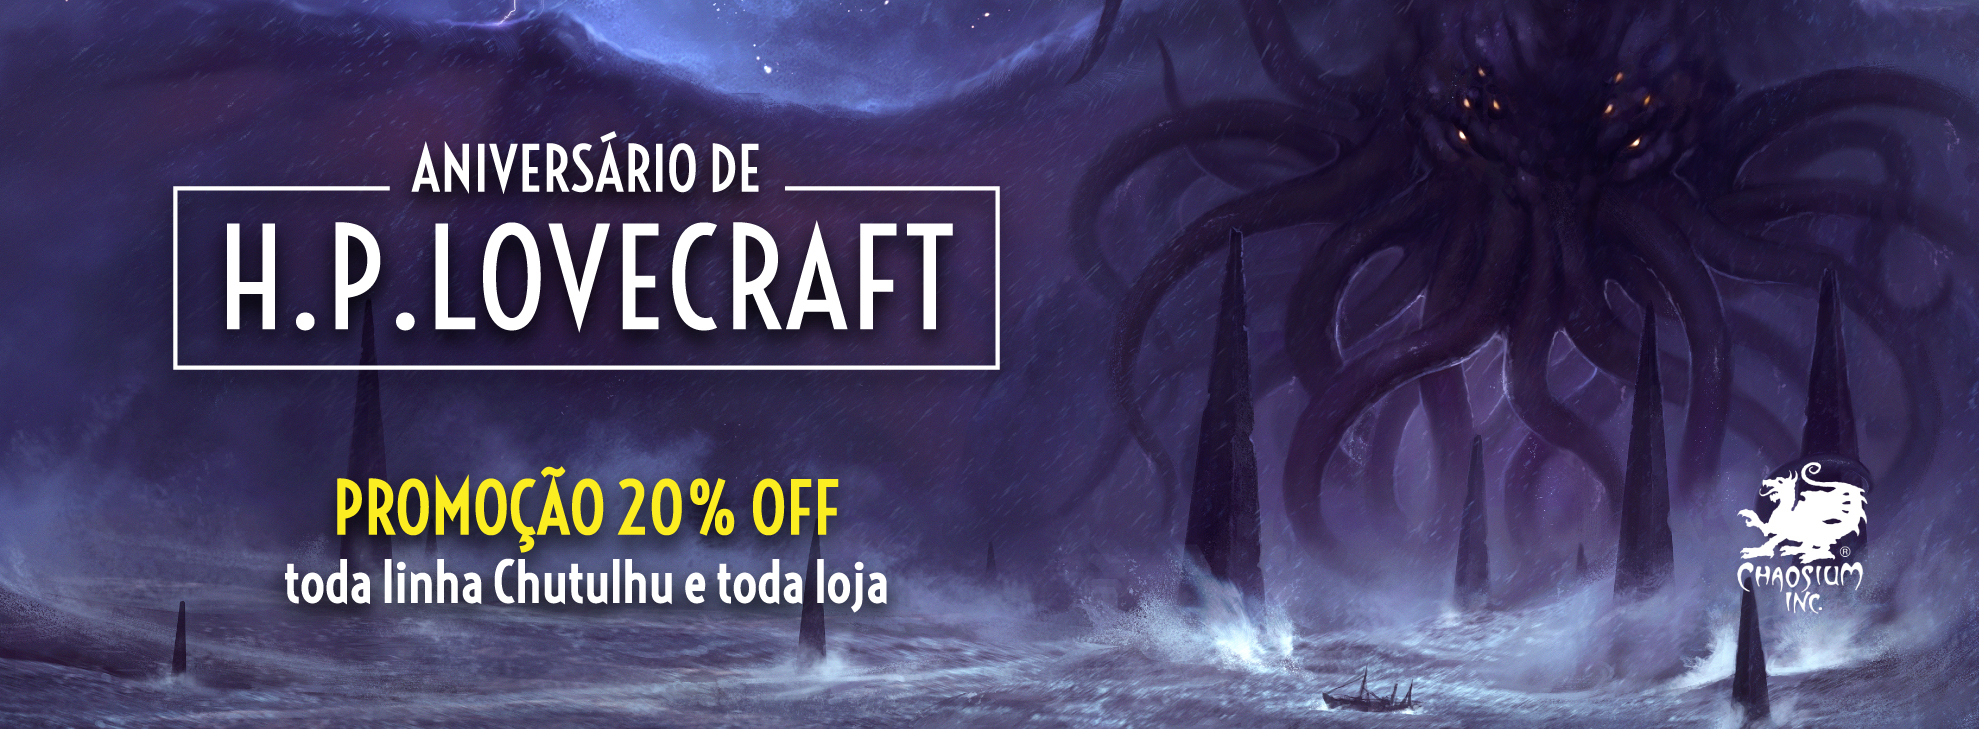 Banner-Lovecraft-02